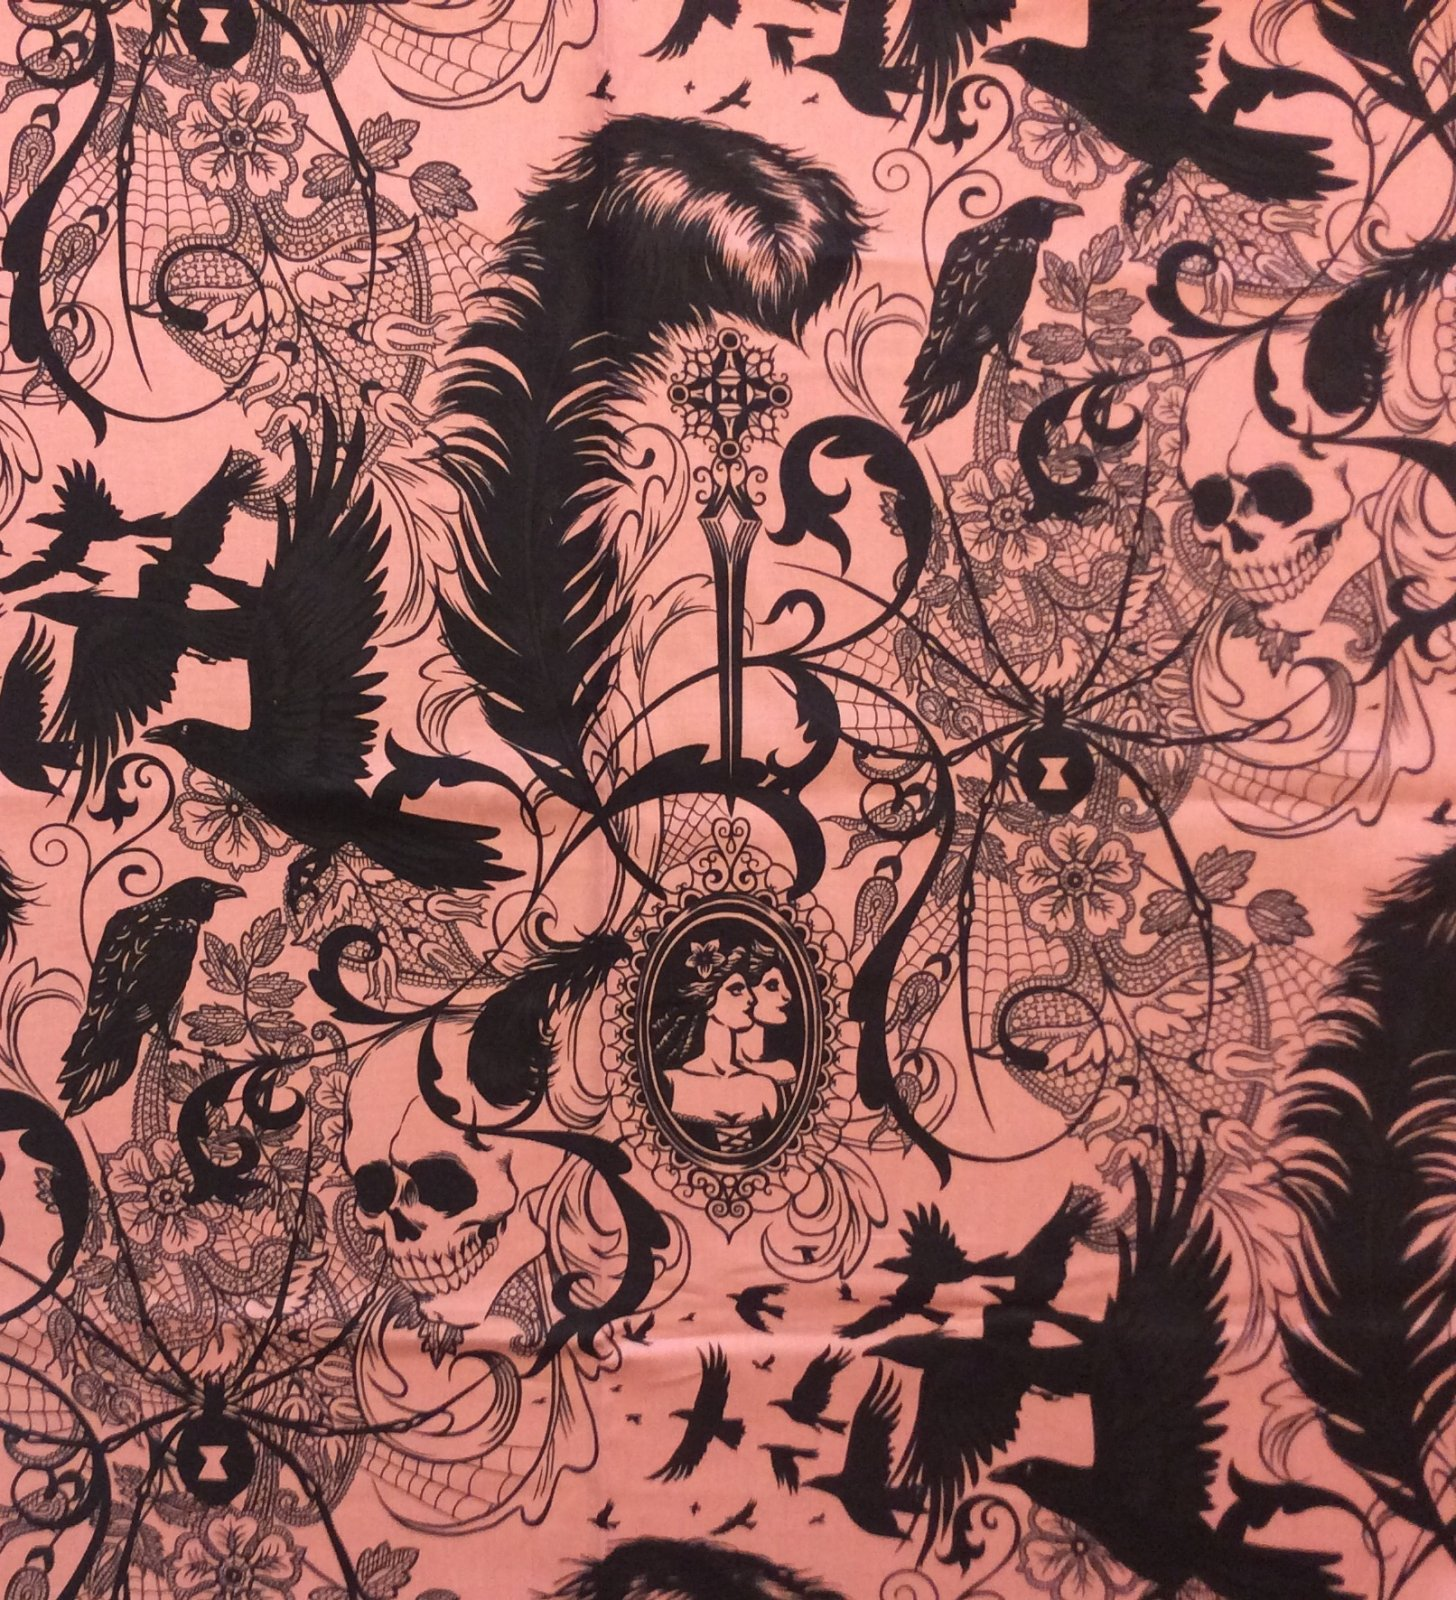 After Dark! Pink and Black Alexander Henry raven skulls cameo lace feather birds spider Cotton Fabric Quilt Fabric AH340